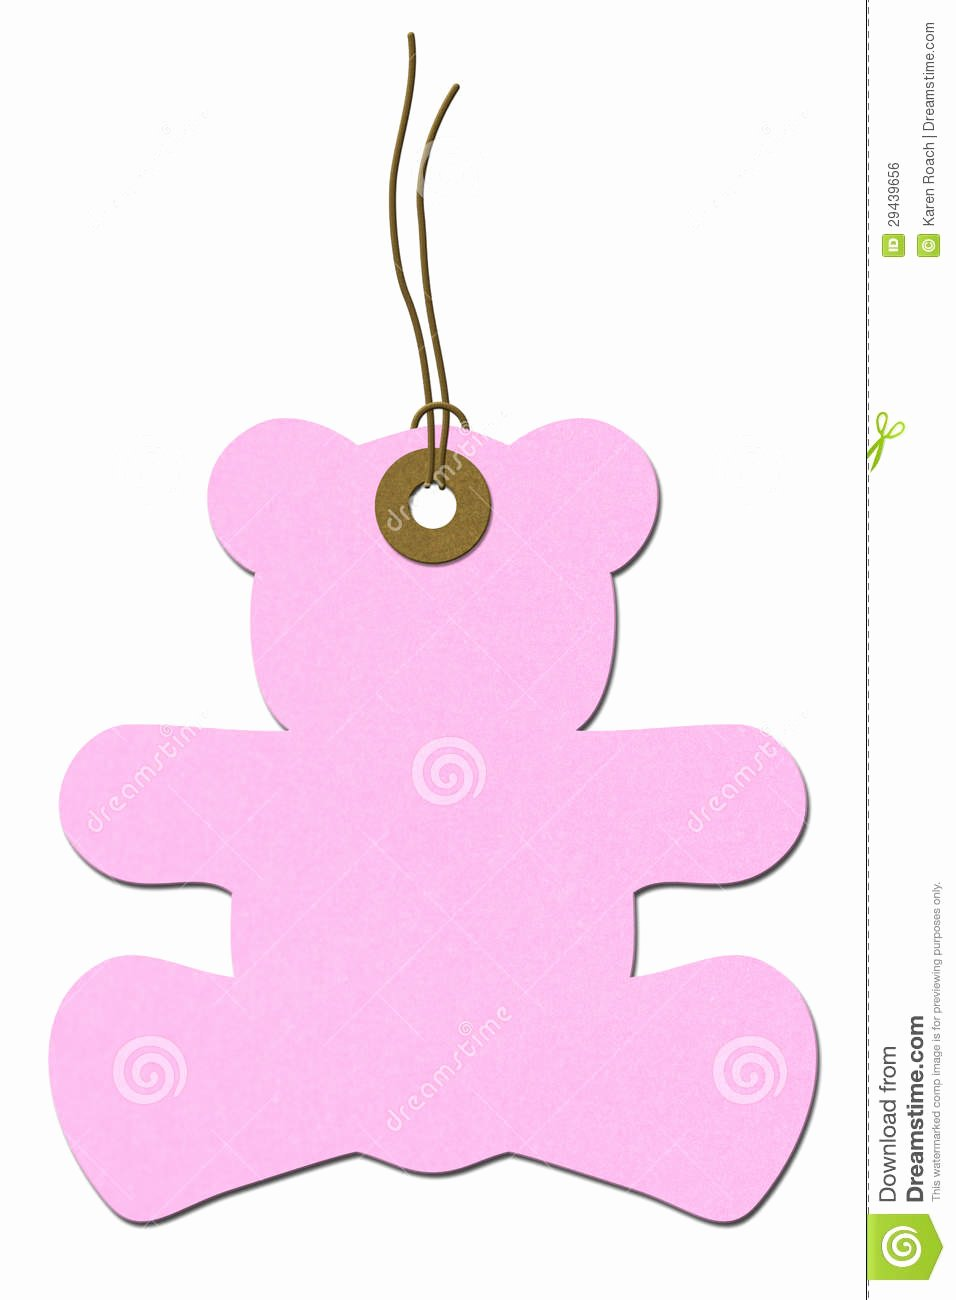 Baby Shower Gift Tags Luxury Handmade Sentiments Tags and Labels